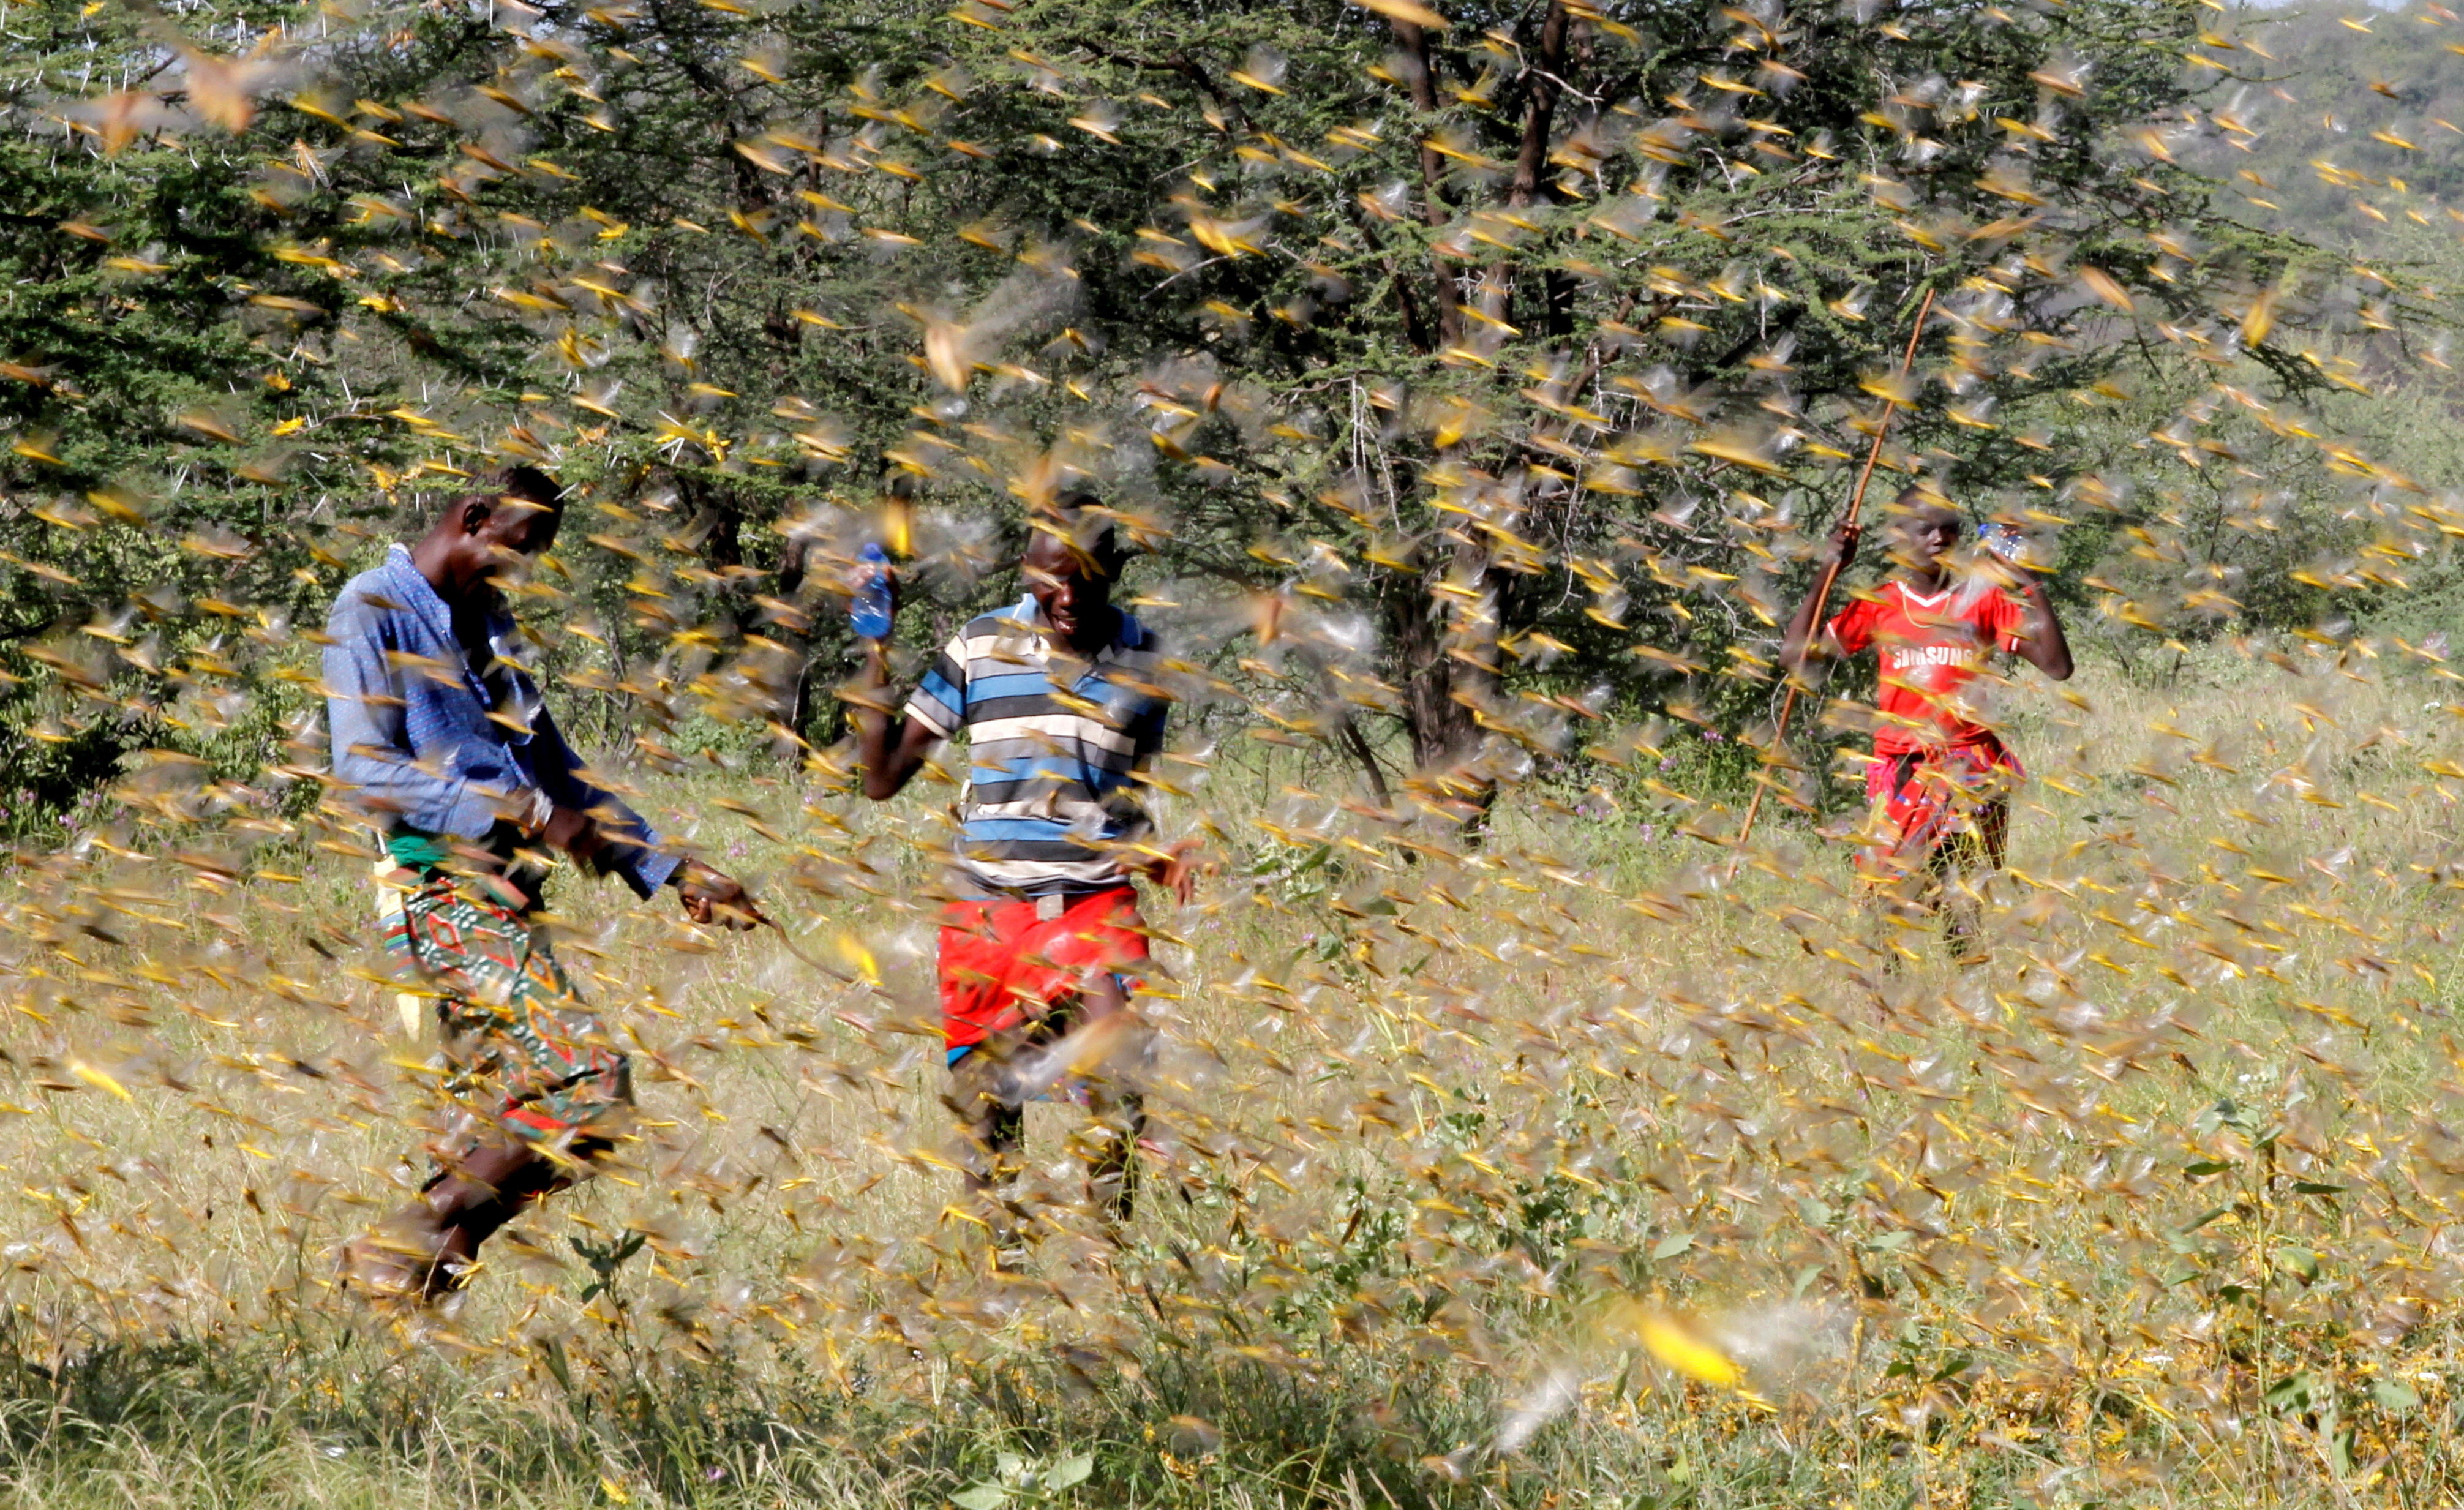 a group of men fight through a swarm of locusts.